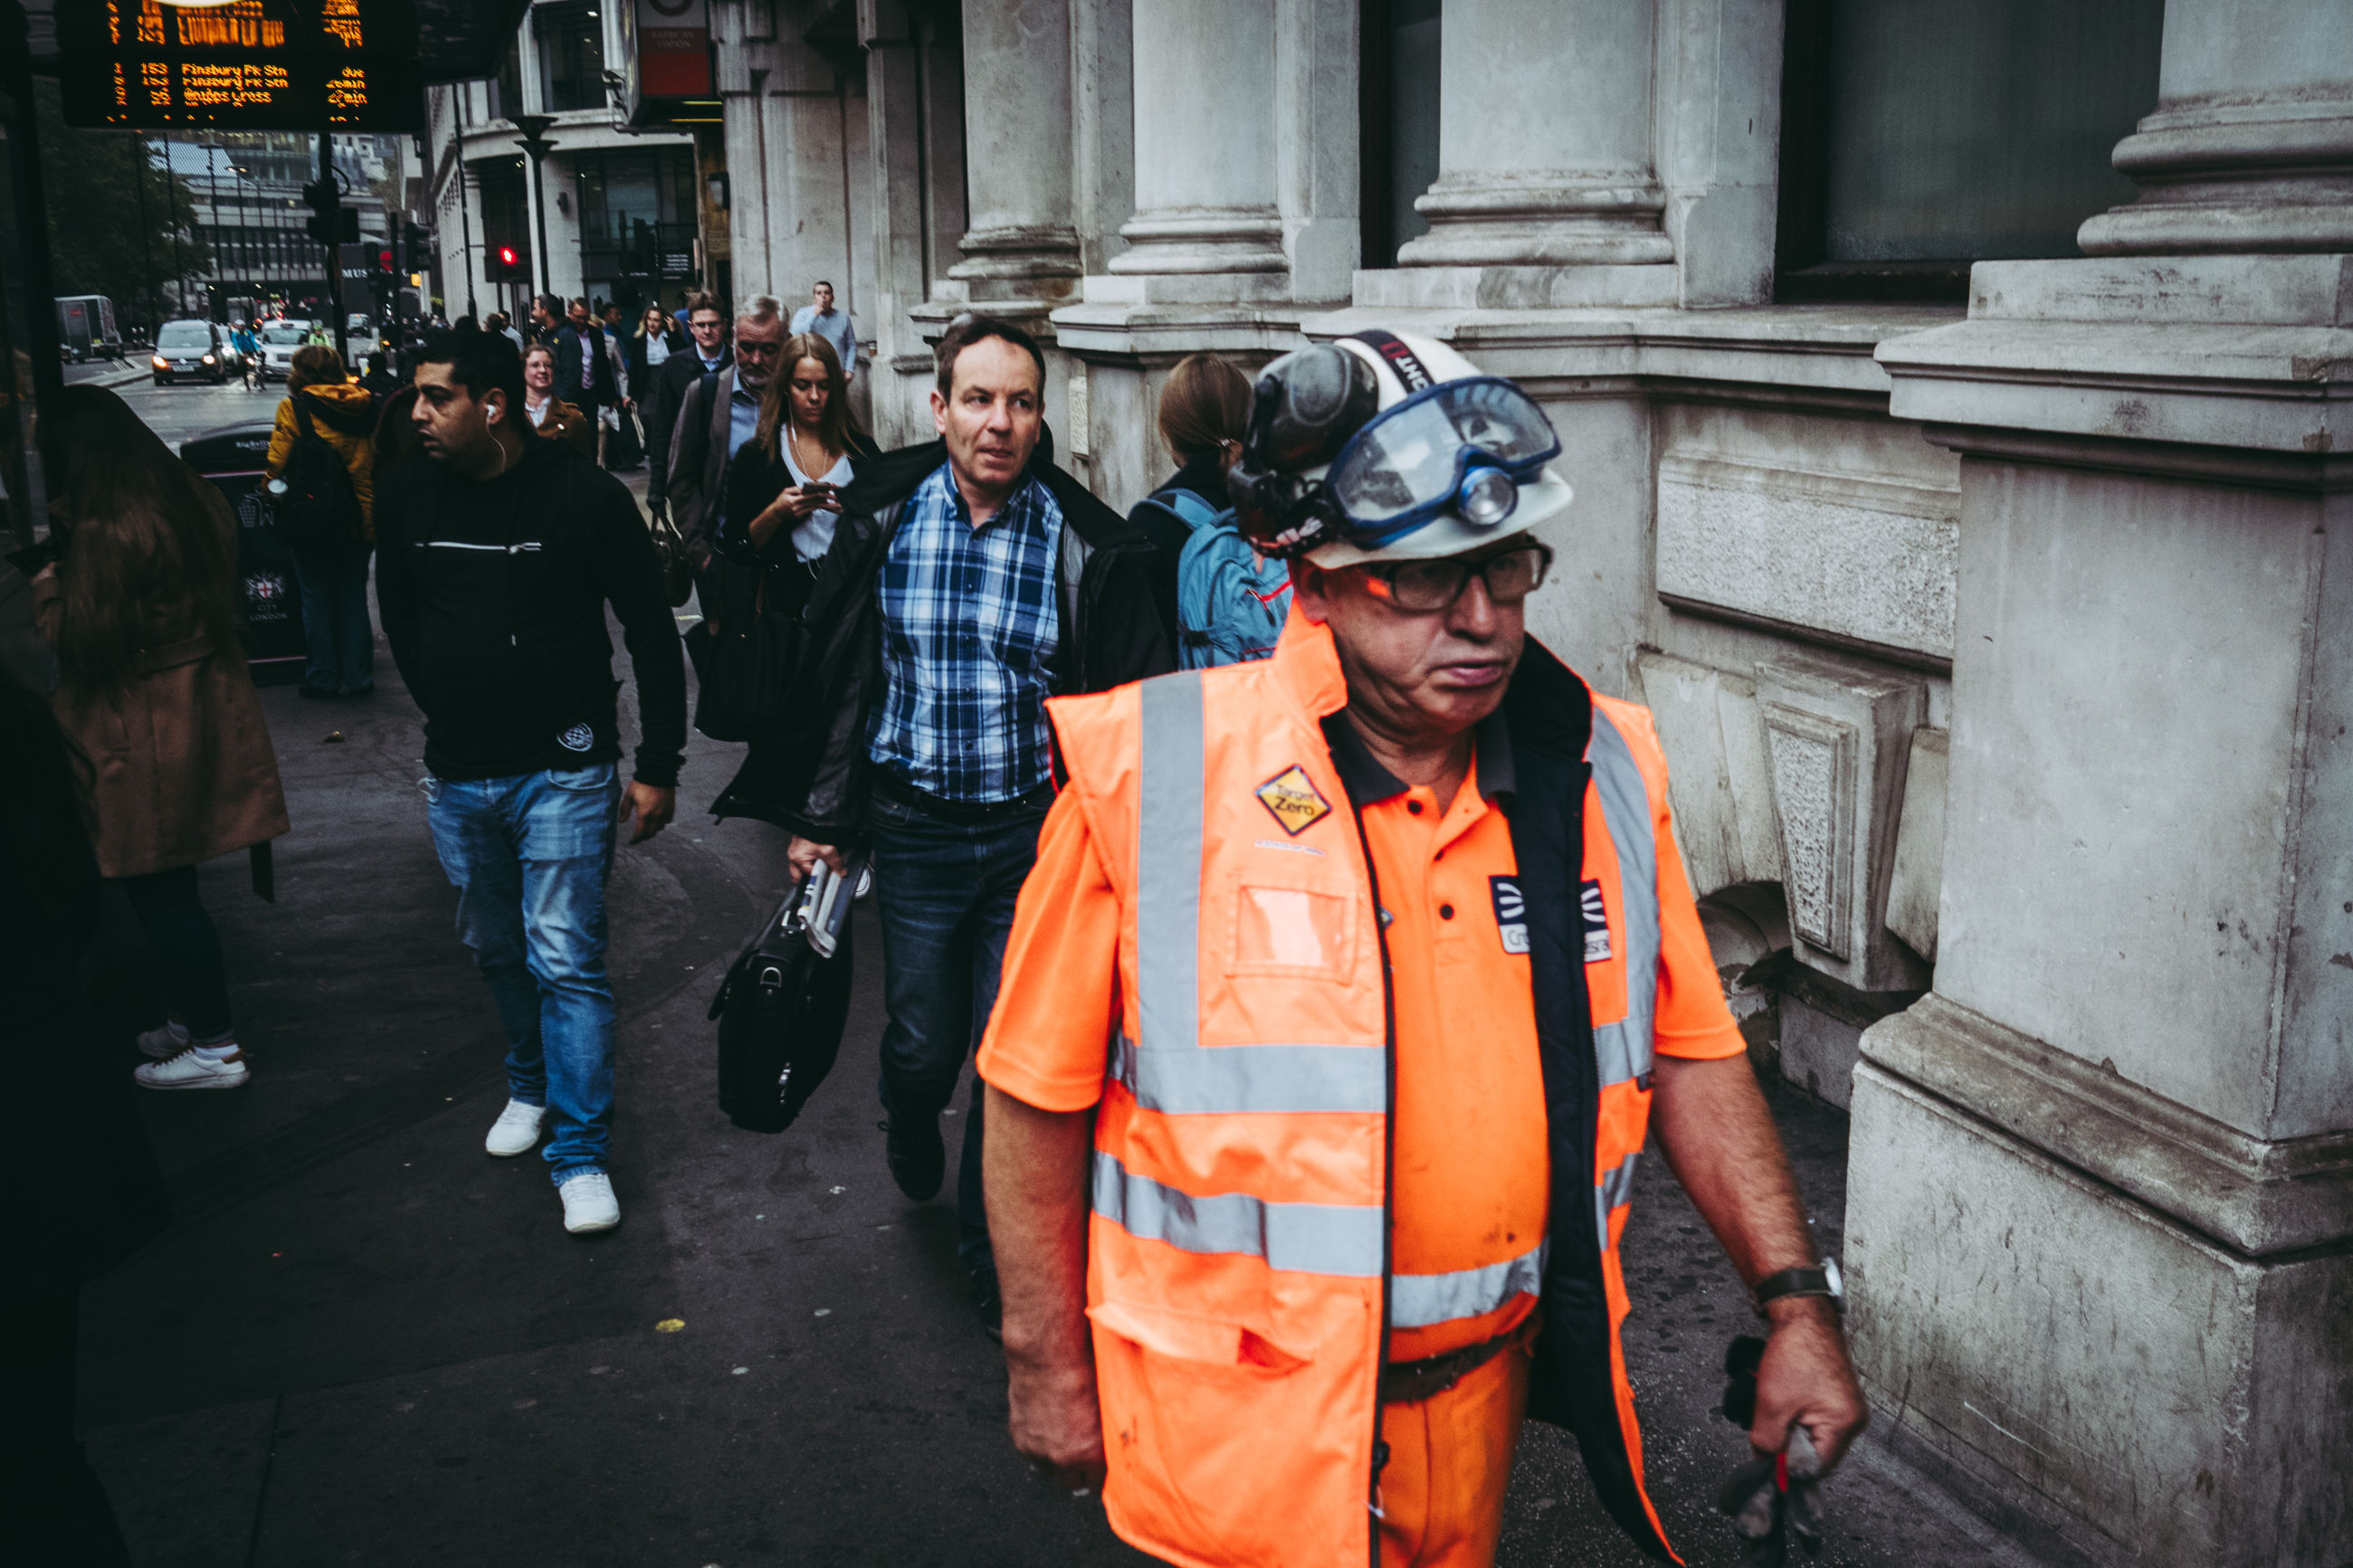 group of people, real people, architecture, men, safety, occupation, street, city, standing, protection, headwear, building exterior, helmet, built structure, day, clothing, women, people, reflective clothing, adult, coworker